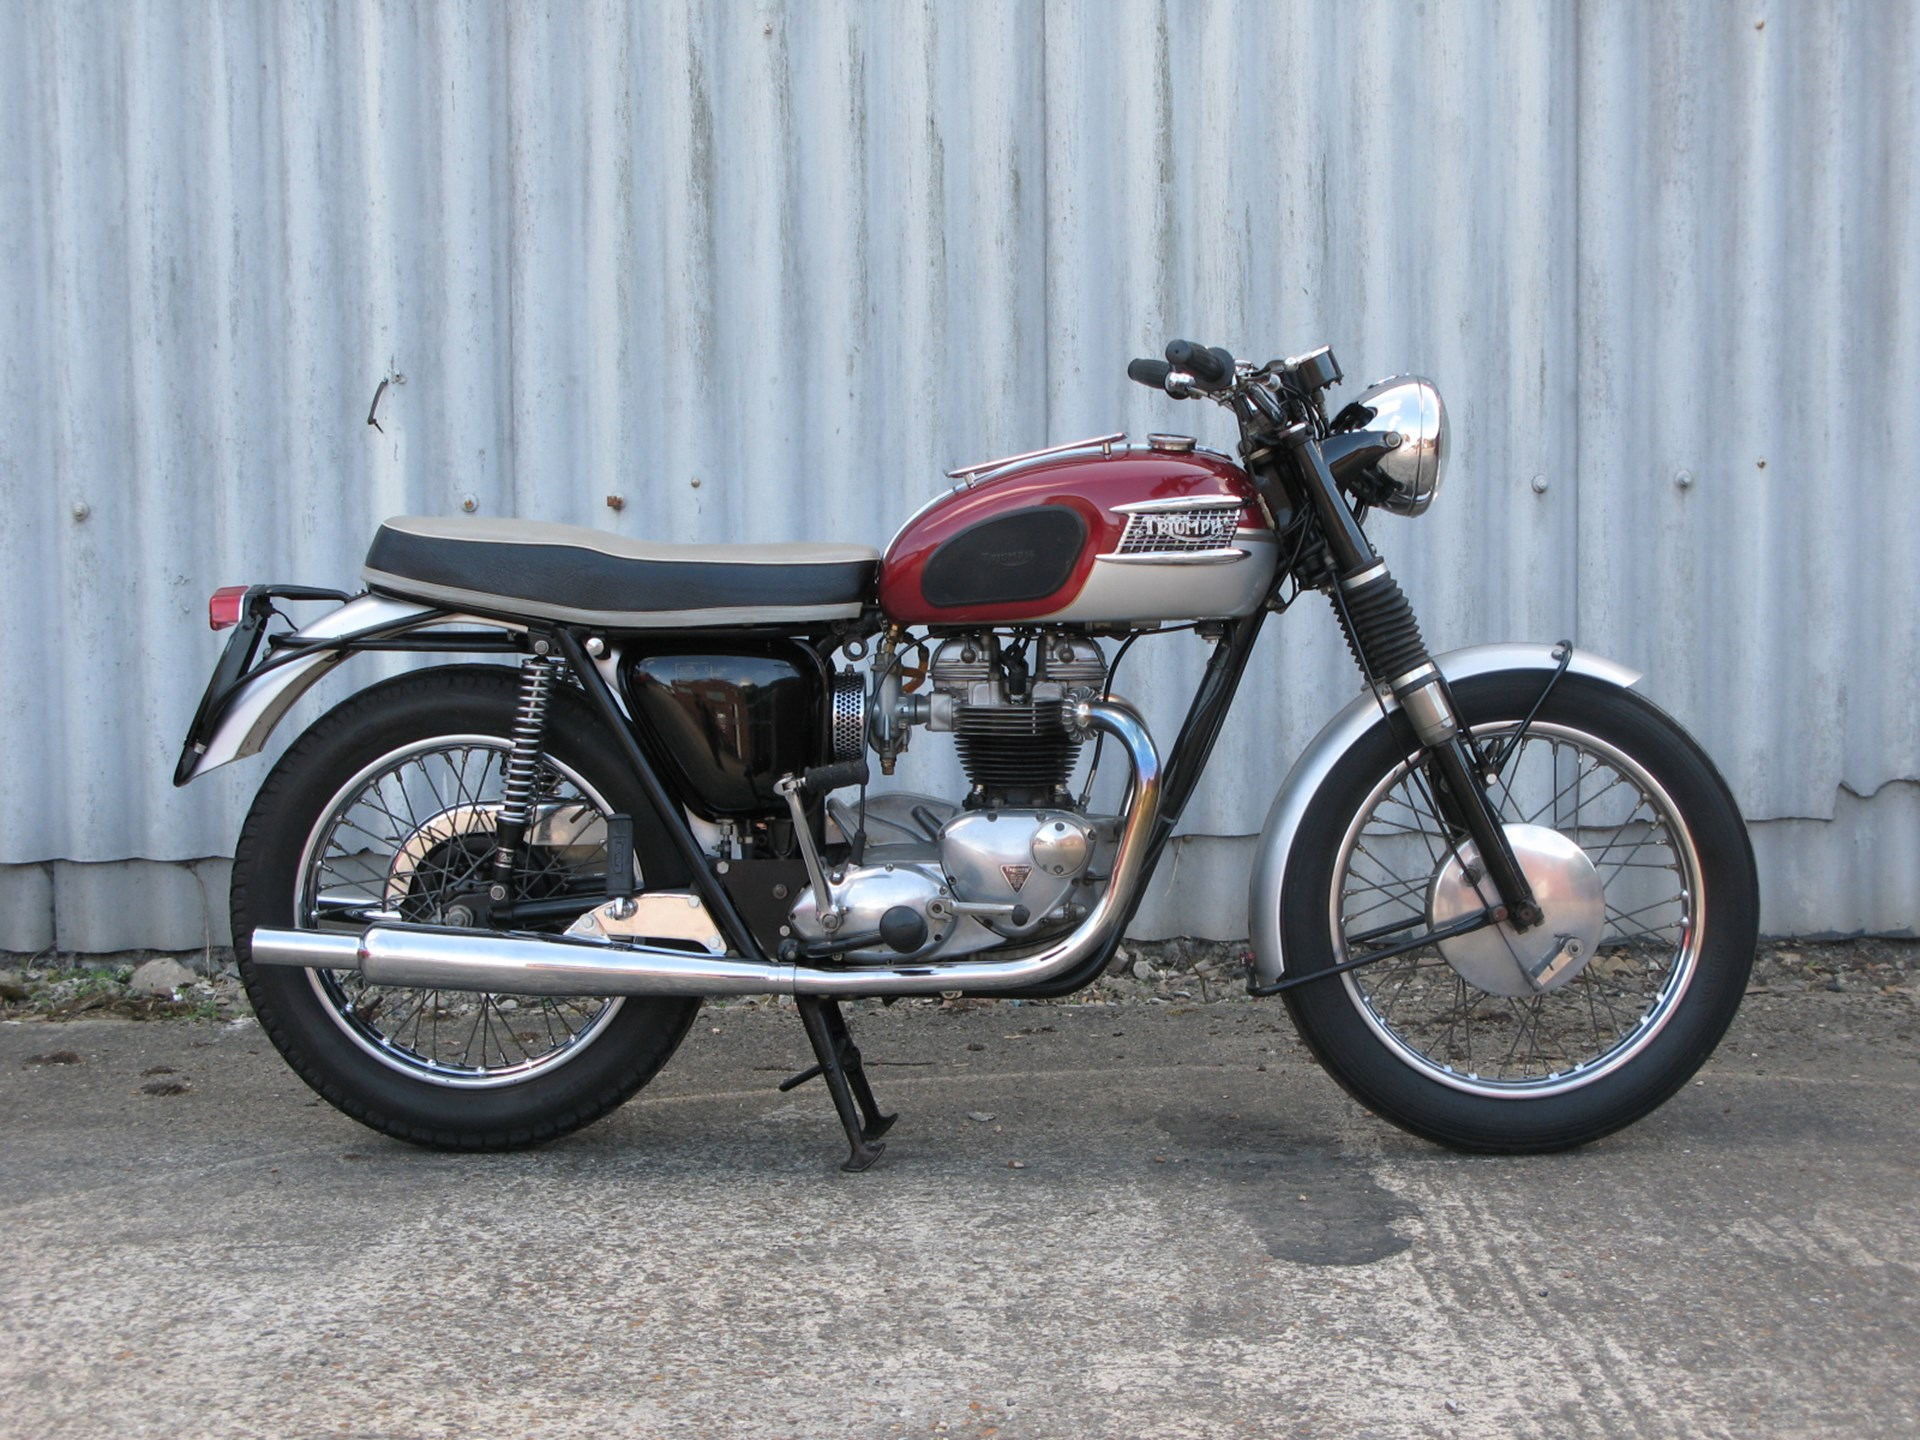 Triumph Tr6 Wiring Diagram On 1973 Triumph Bonneville Wiring Diagram